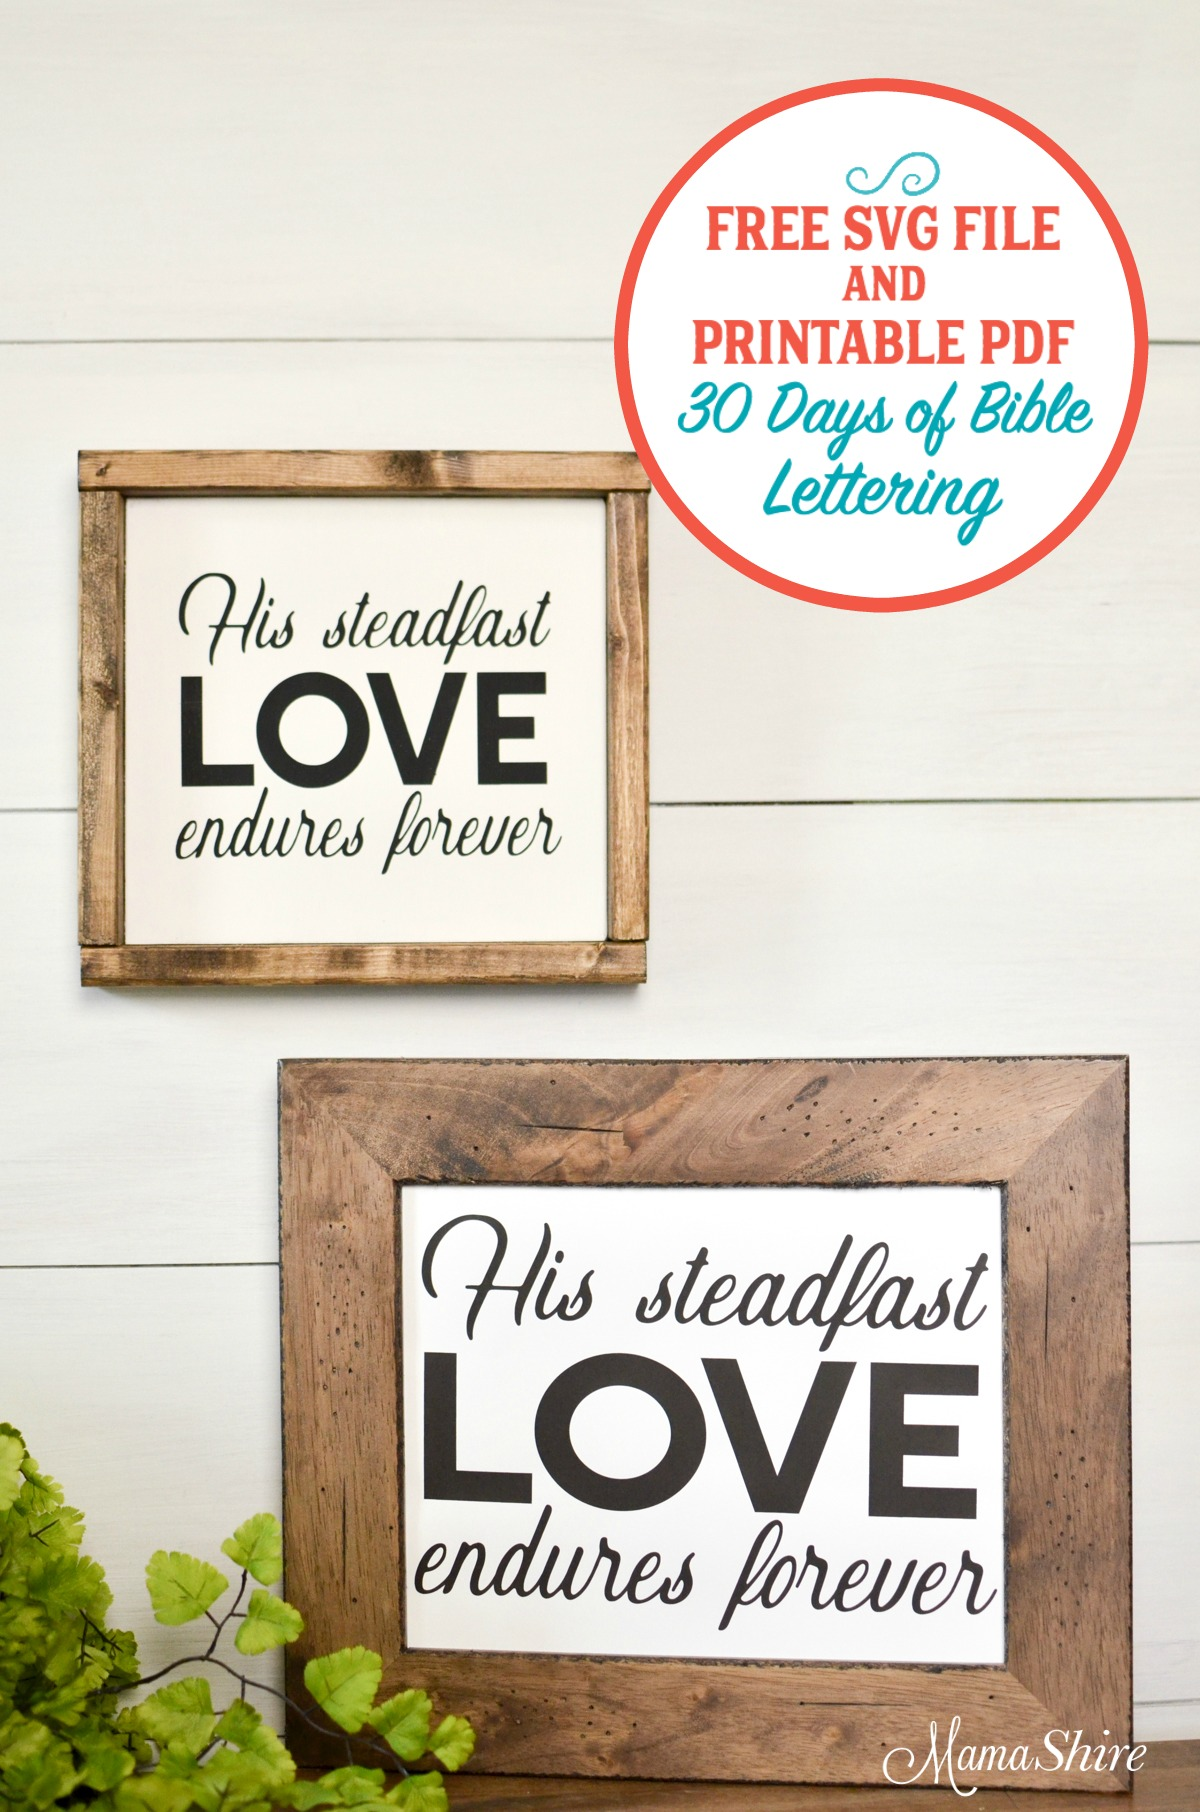 Steadfast Love Free SVG file & printable PDF.